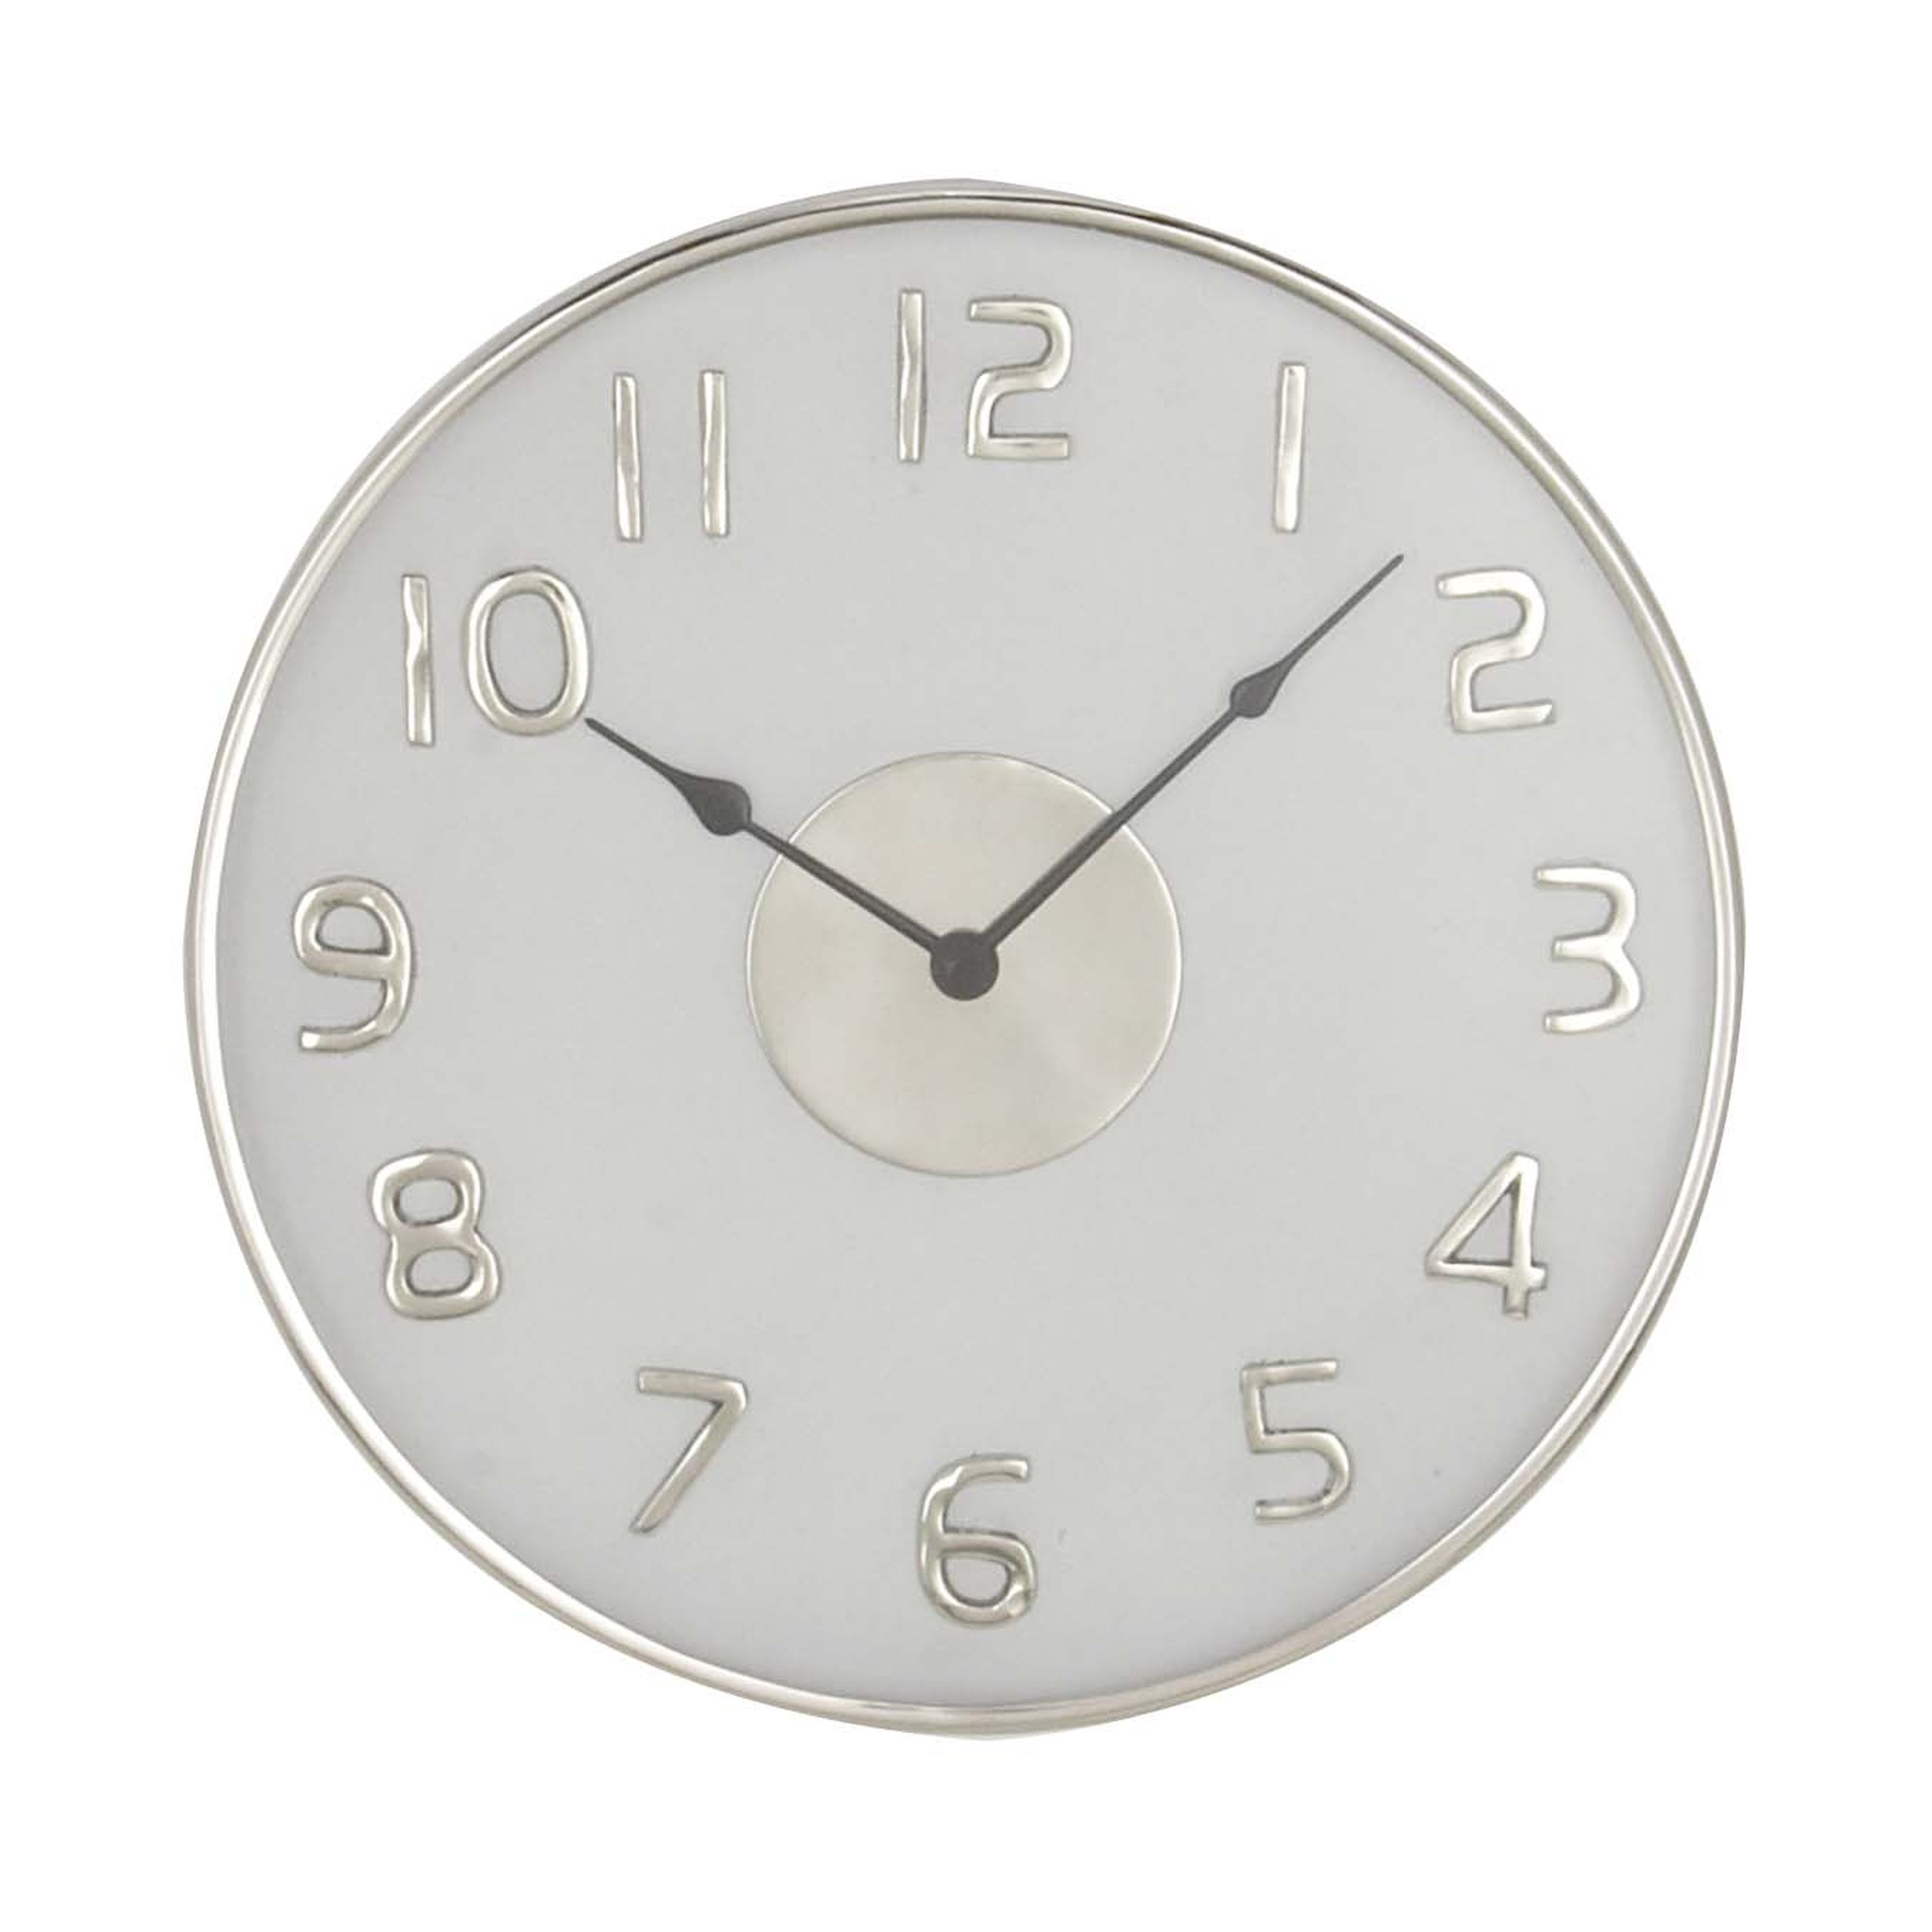 Shop 18 Inch Modern Round White Stainless Steel Wall Clock On Sale